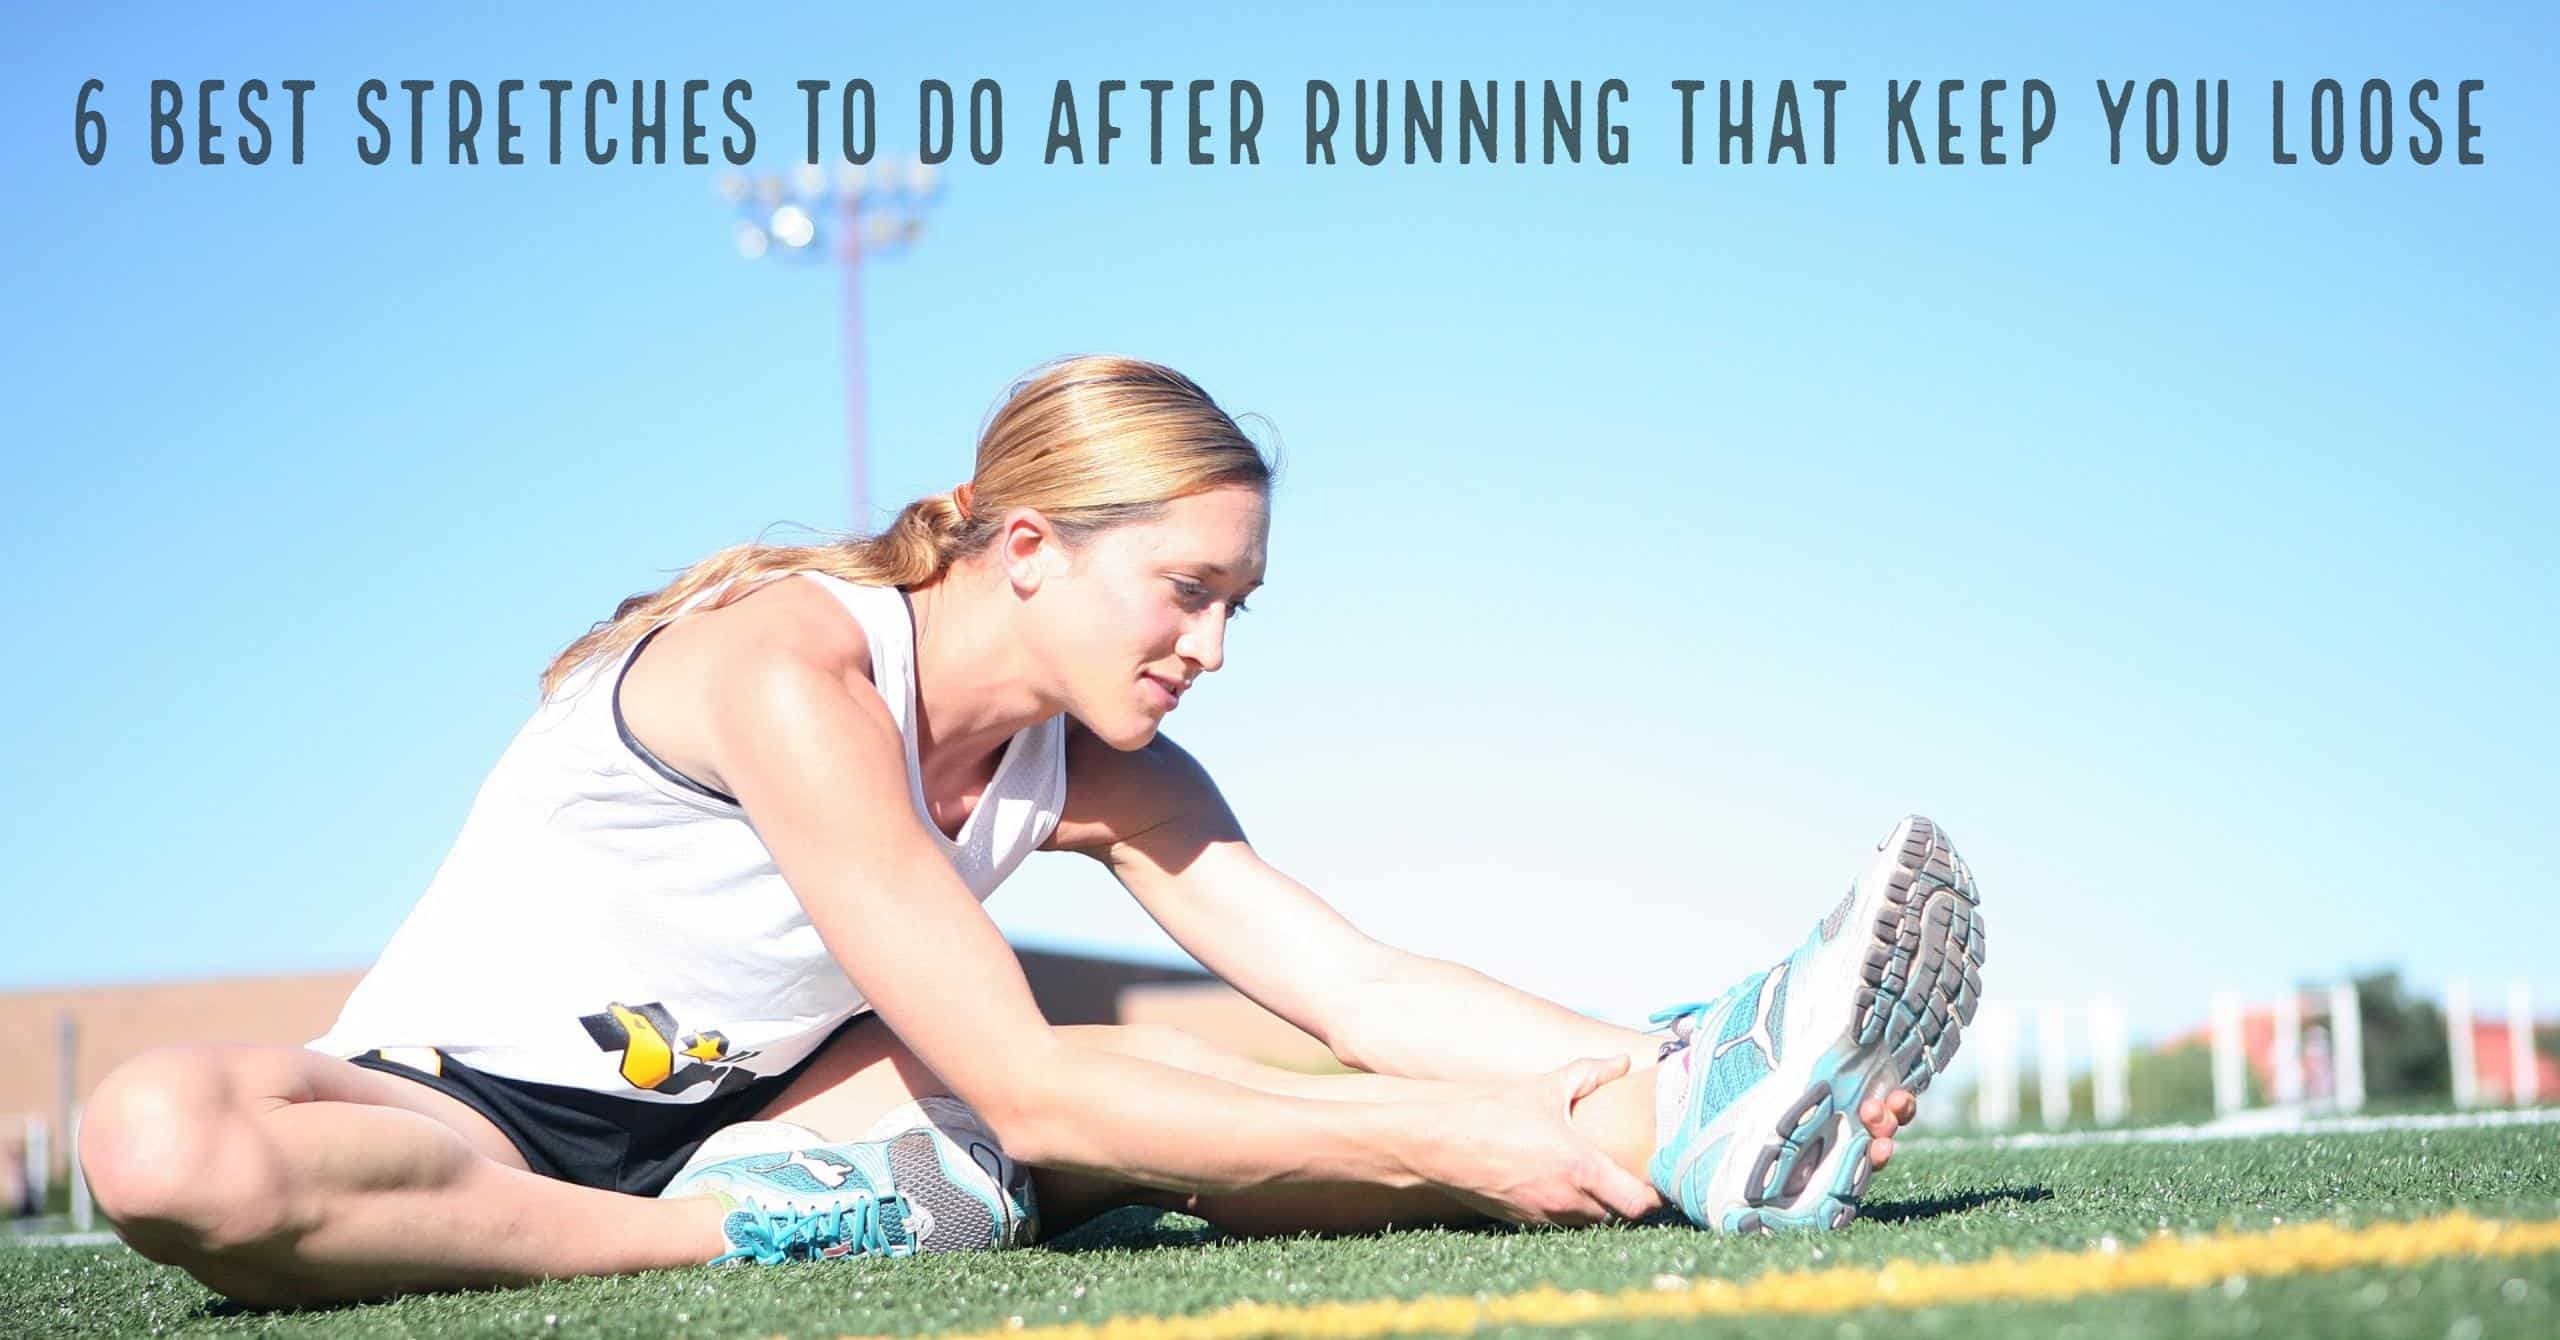 6 Best Stretches To Do After Running That Keep Feeling Good